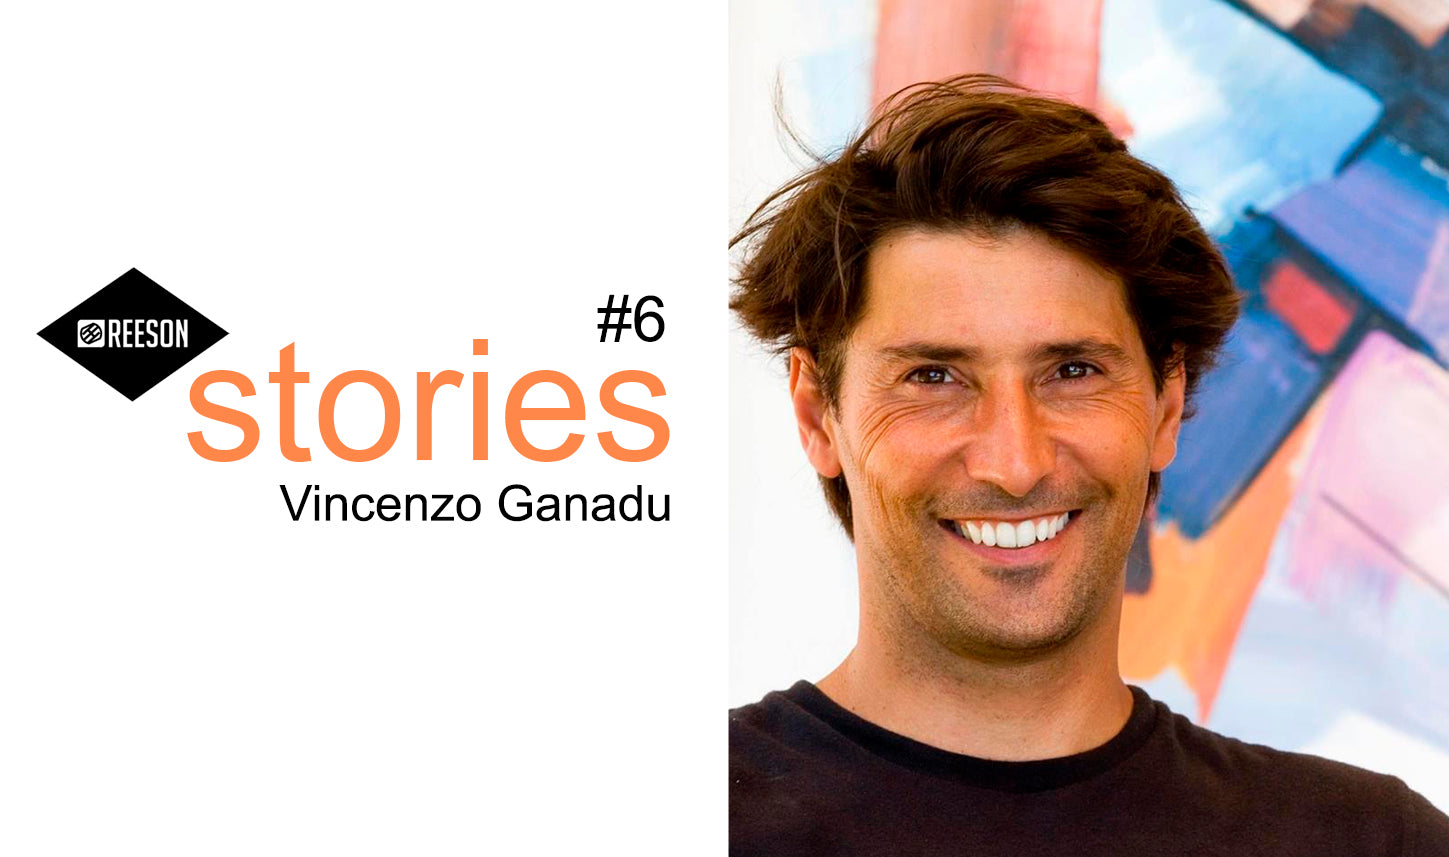 intervista a vincenzo ganadu reeson stories surf